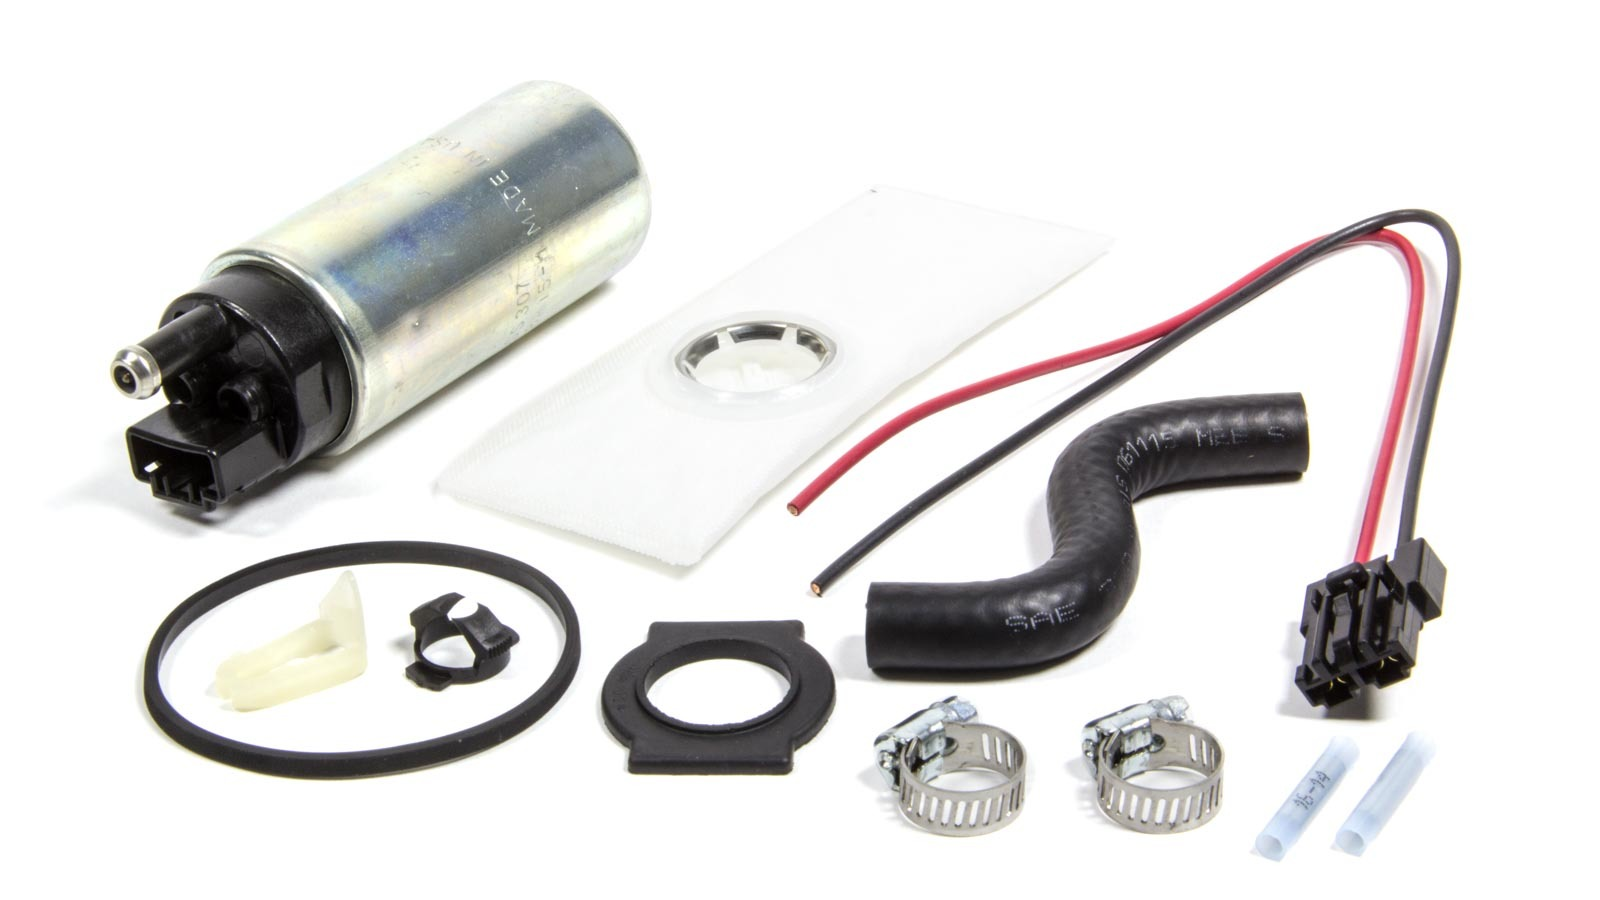 Fuel Pump Kit - 255lph Gas - Mustang 1985-97